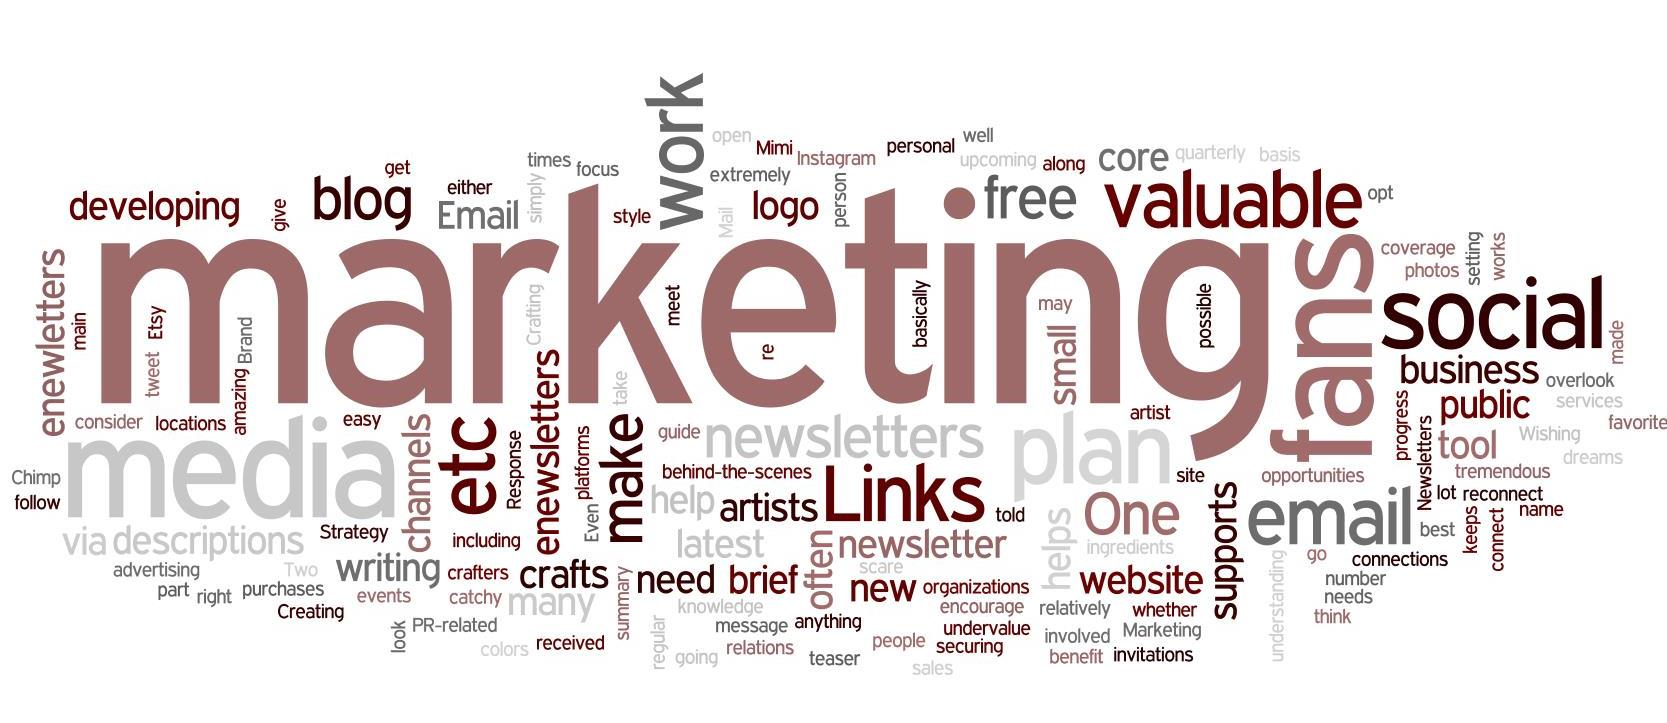 Marketing strategies that can promote your business during holidays by sourcedirect.net.au